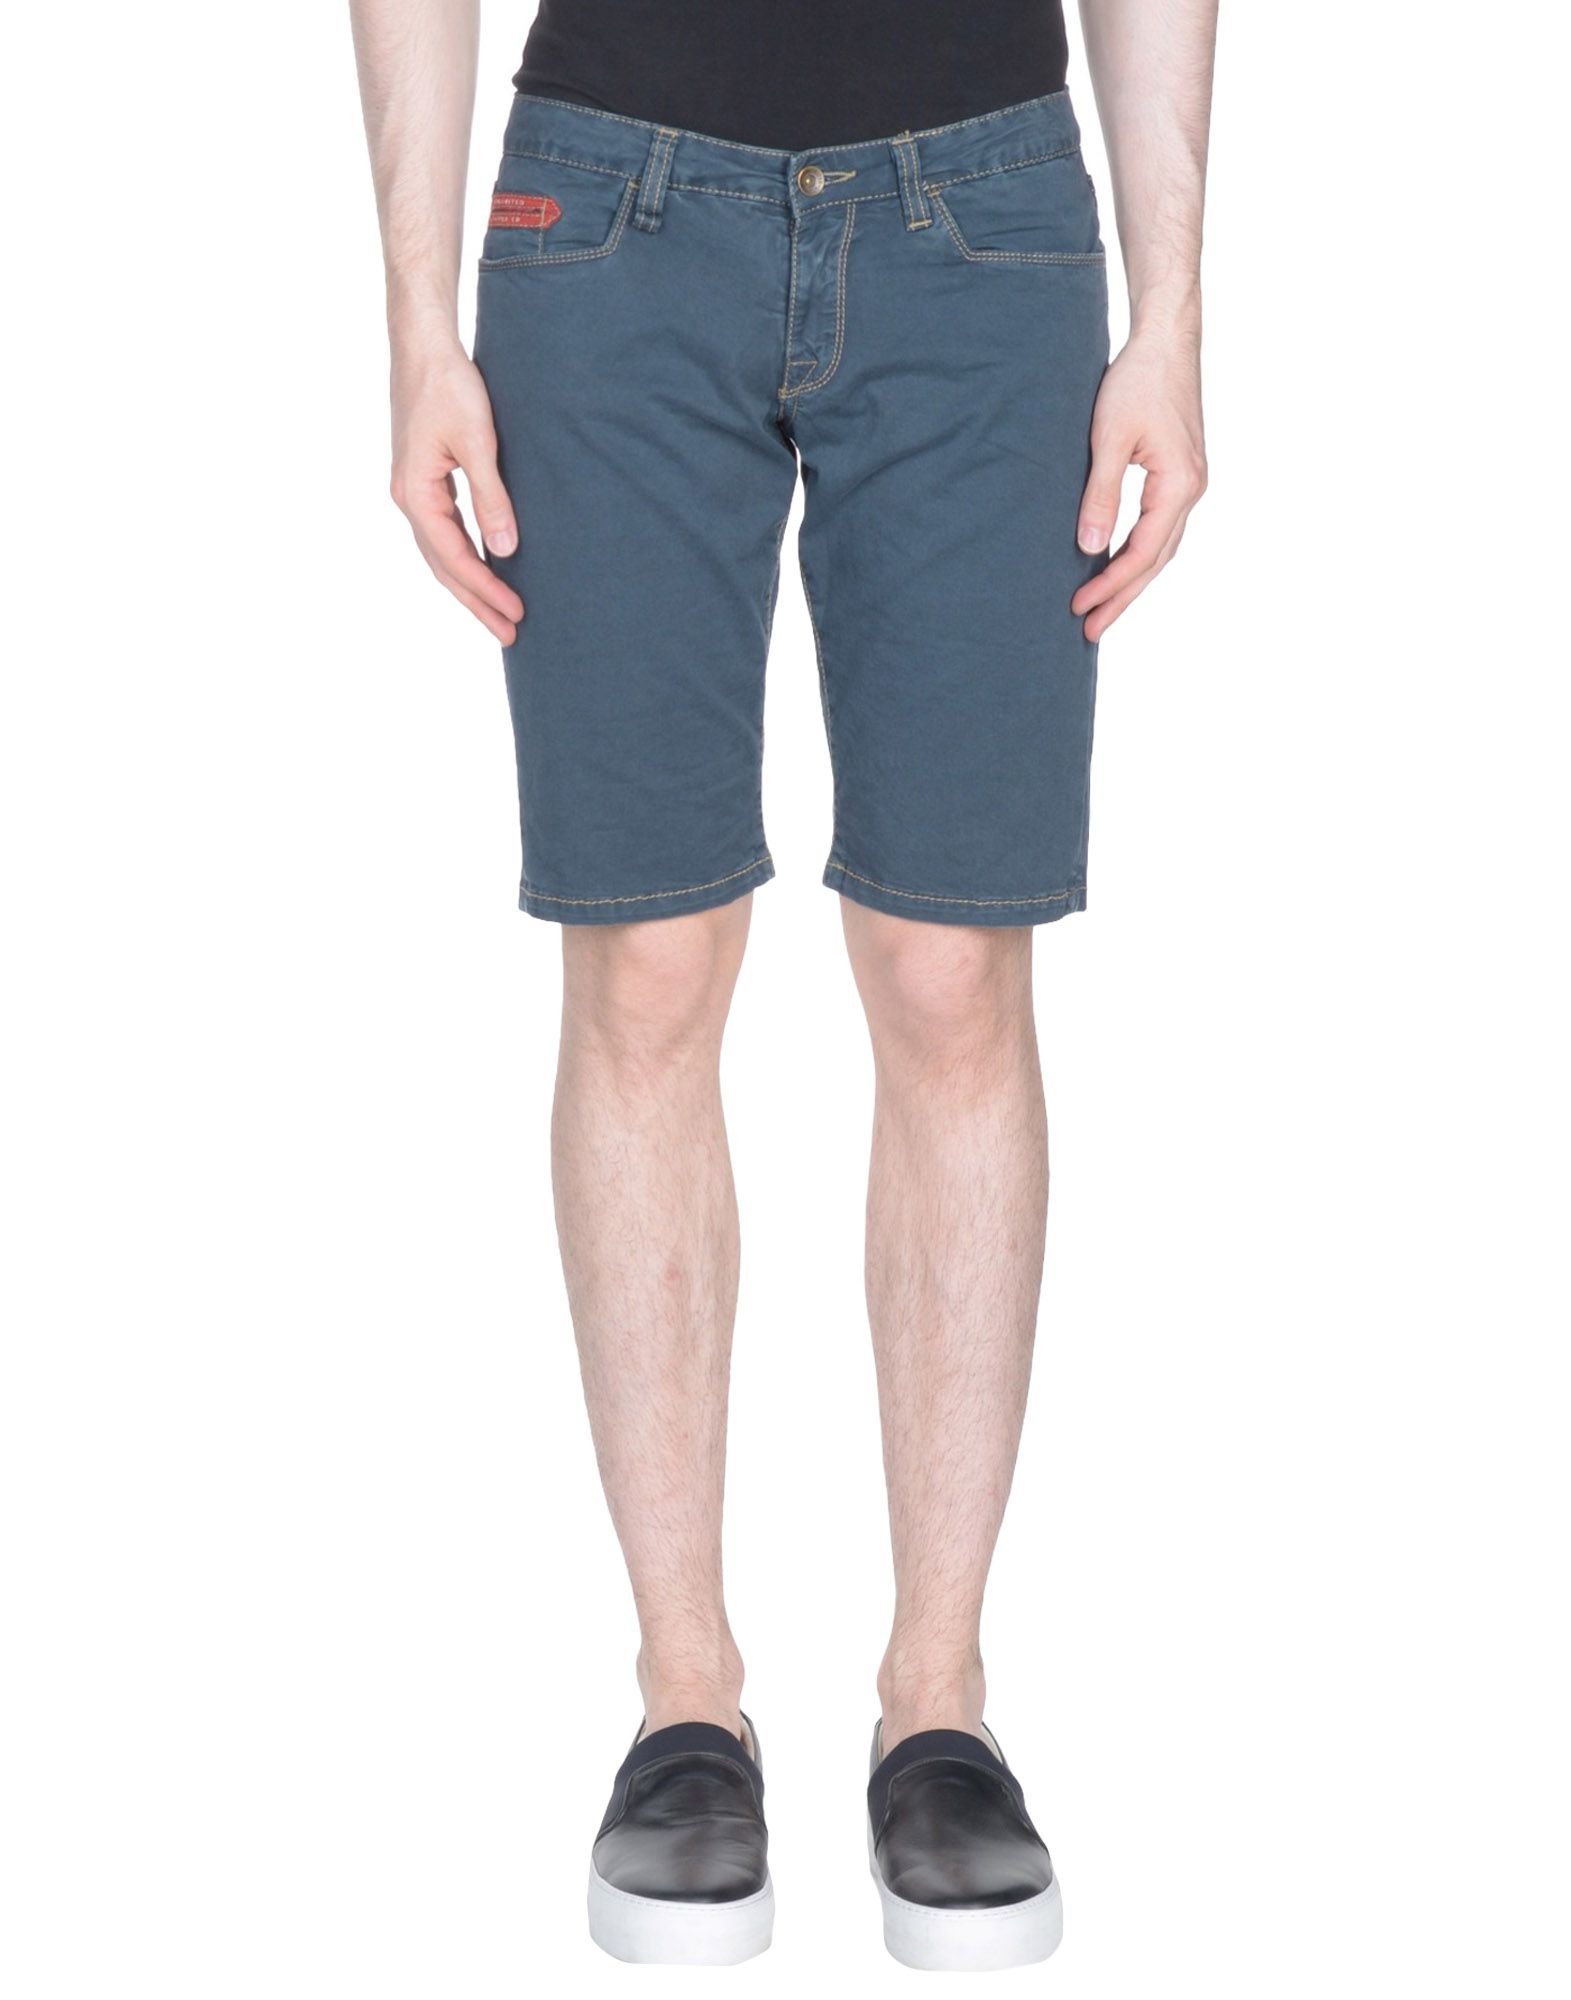 UNLIMITED Shorts & Bermuda in Dark Blue